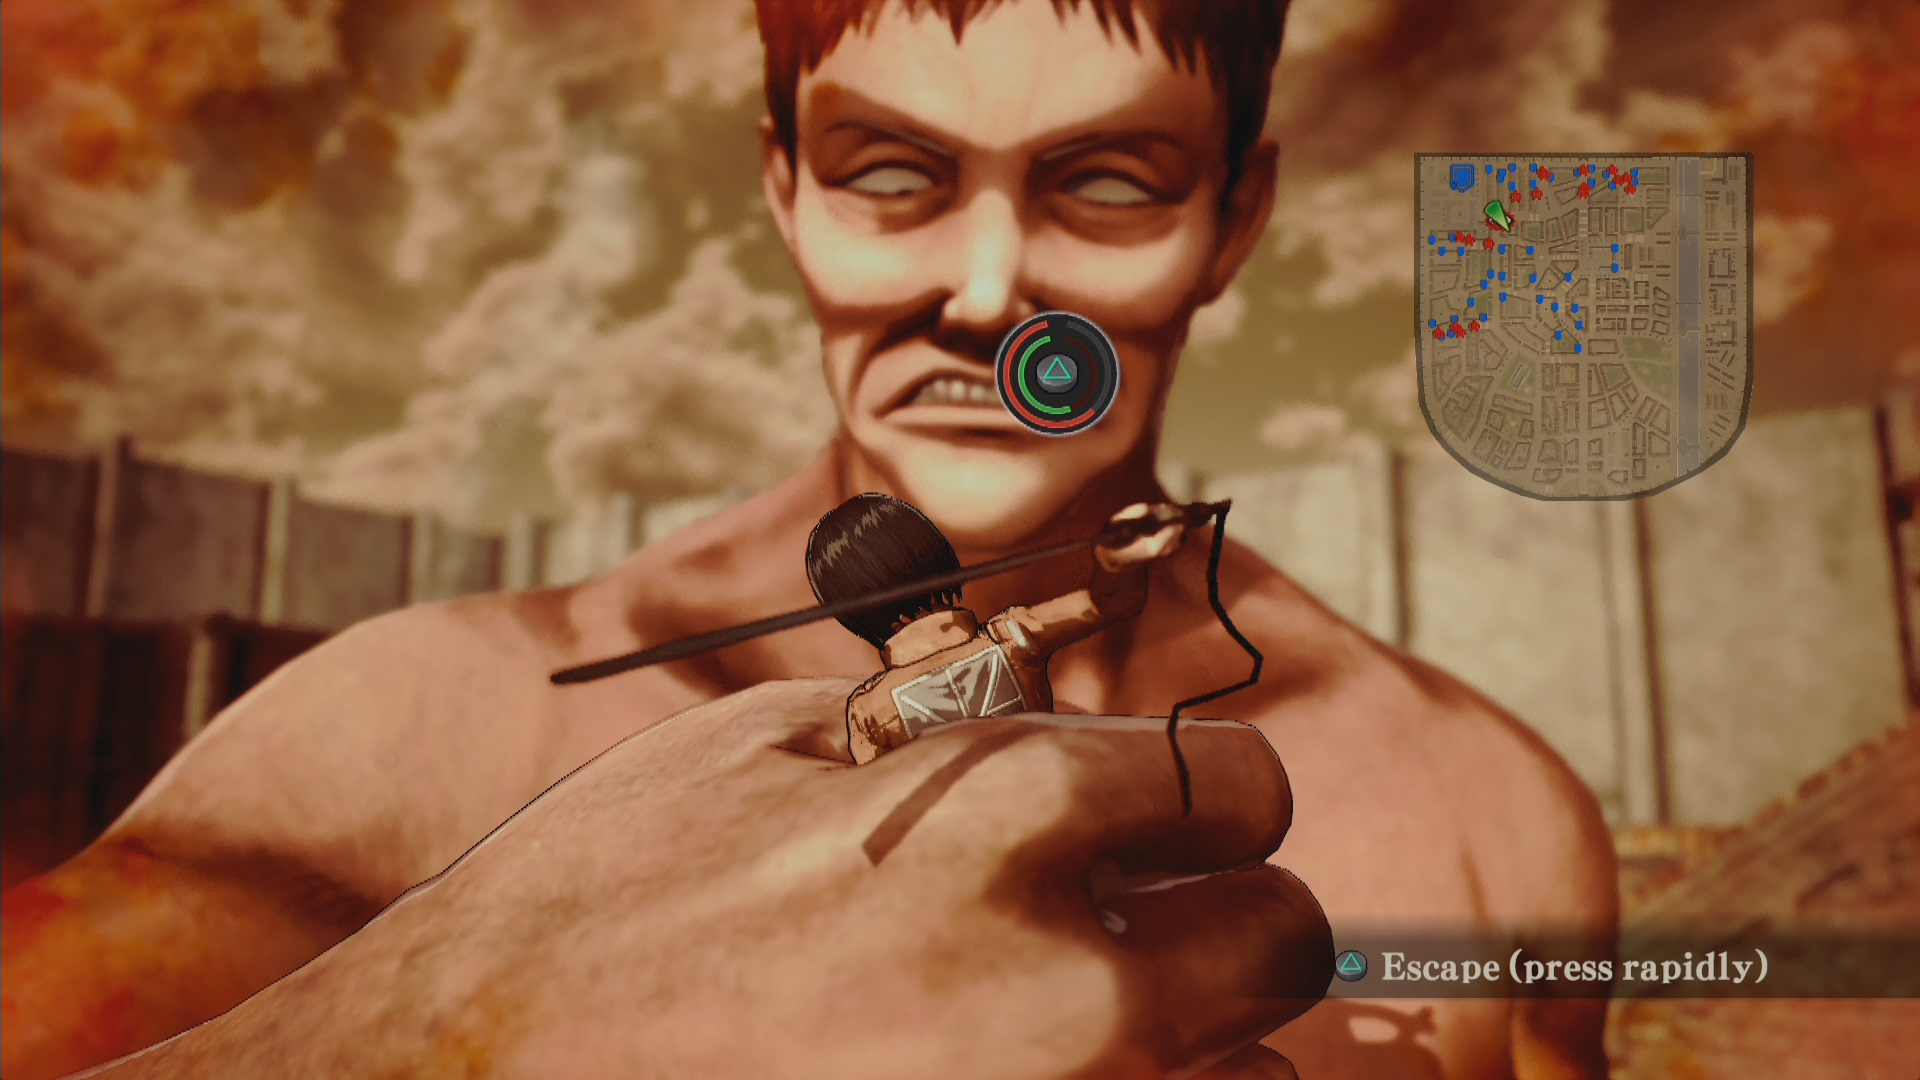 Attack On Titan' Combat Guide: How To Subjugate Titans With